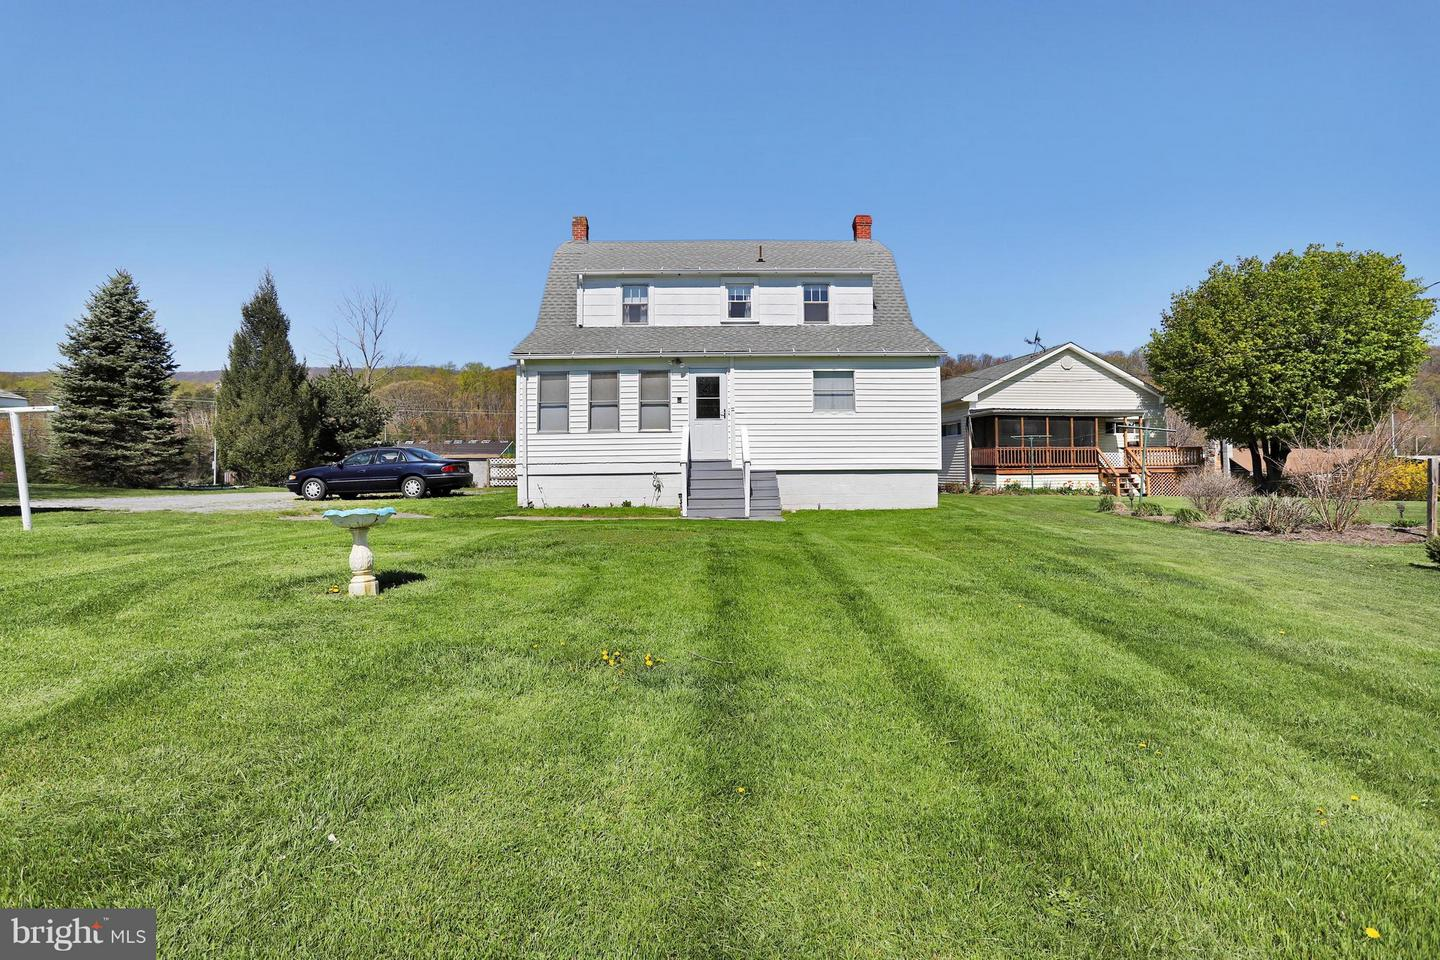 5593 Valley, Berkeley Springs, WV, 25411